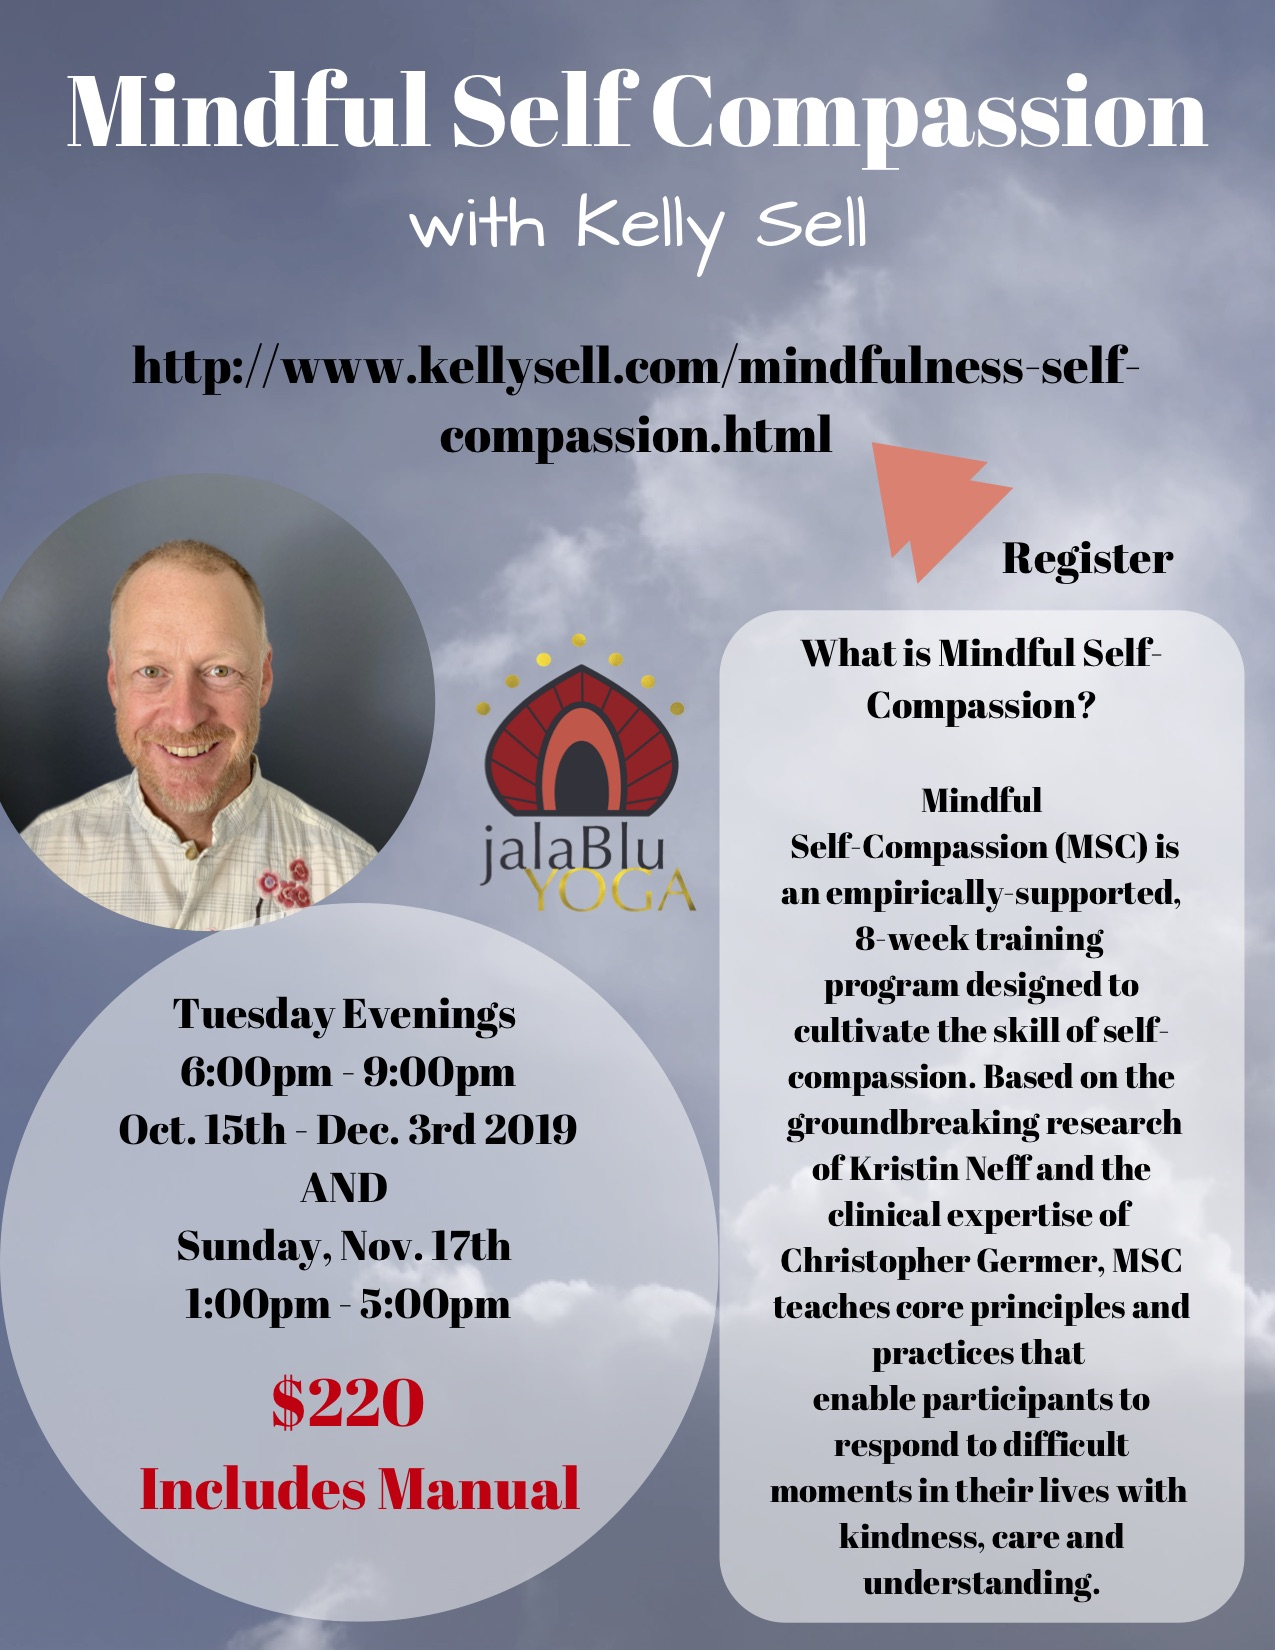 REGISTER at:  http://www.kellysell.com/mindfulness-self-compassion.html